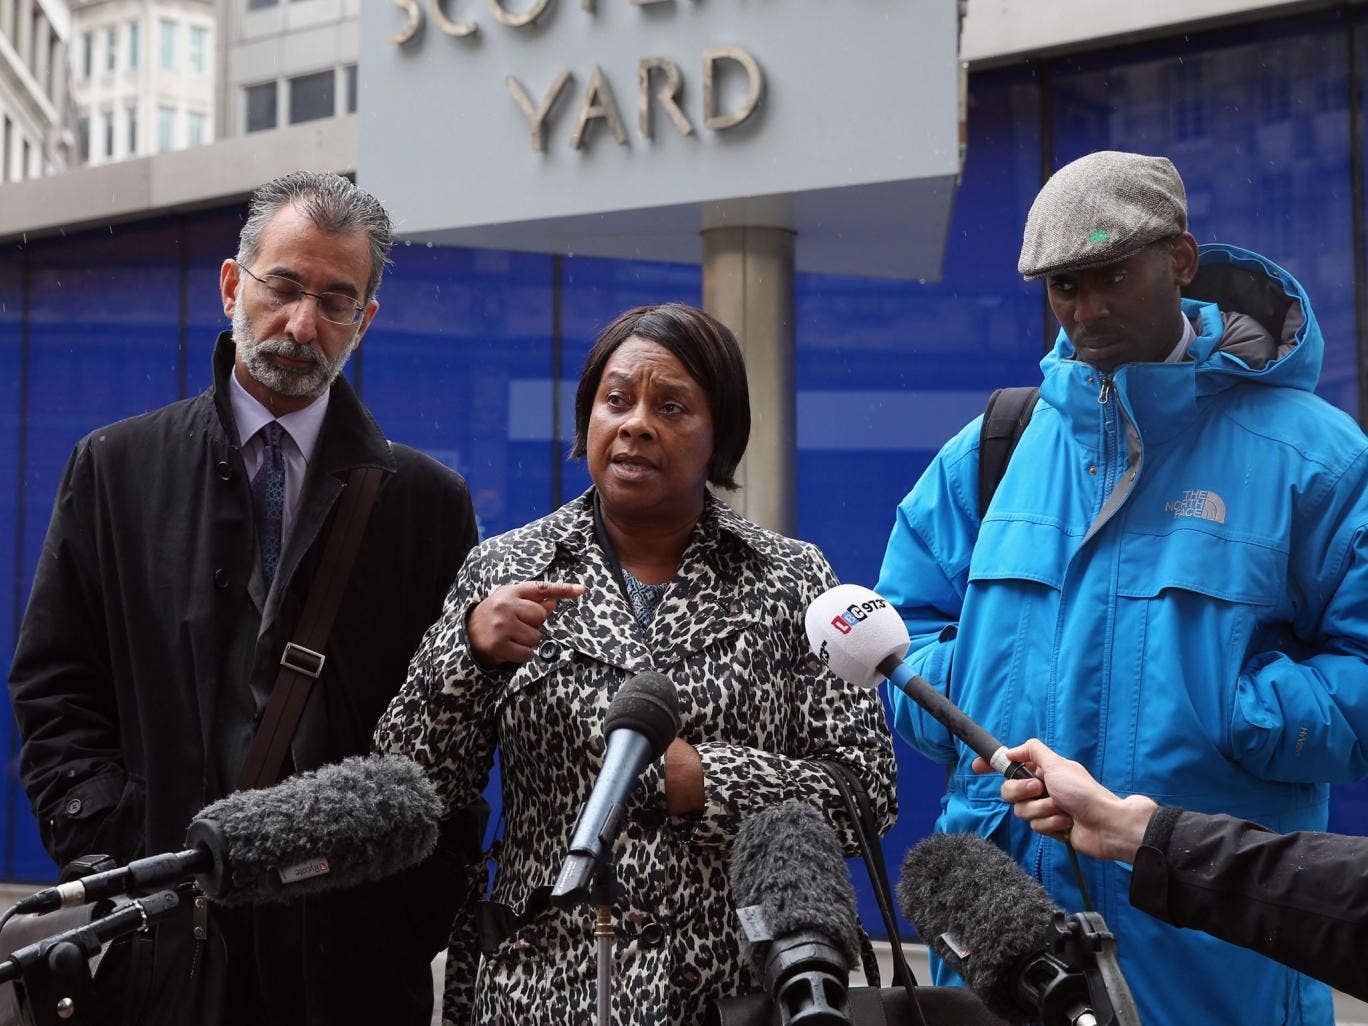 Doreen Lawrence speaking at Scotland Yard last week